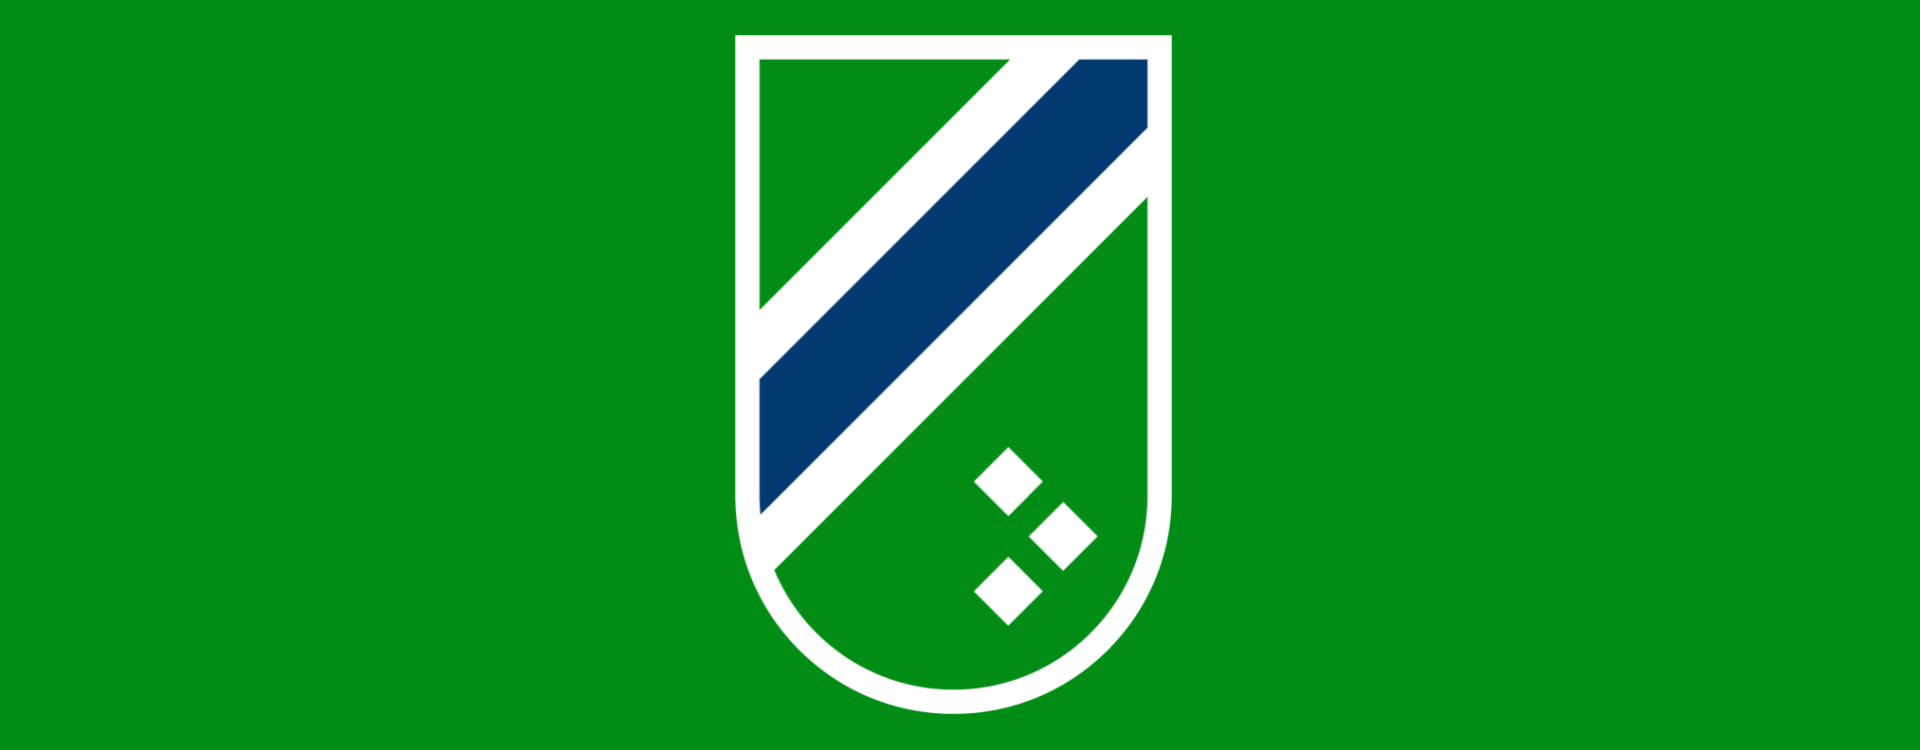 crest on green